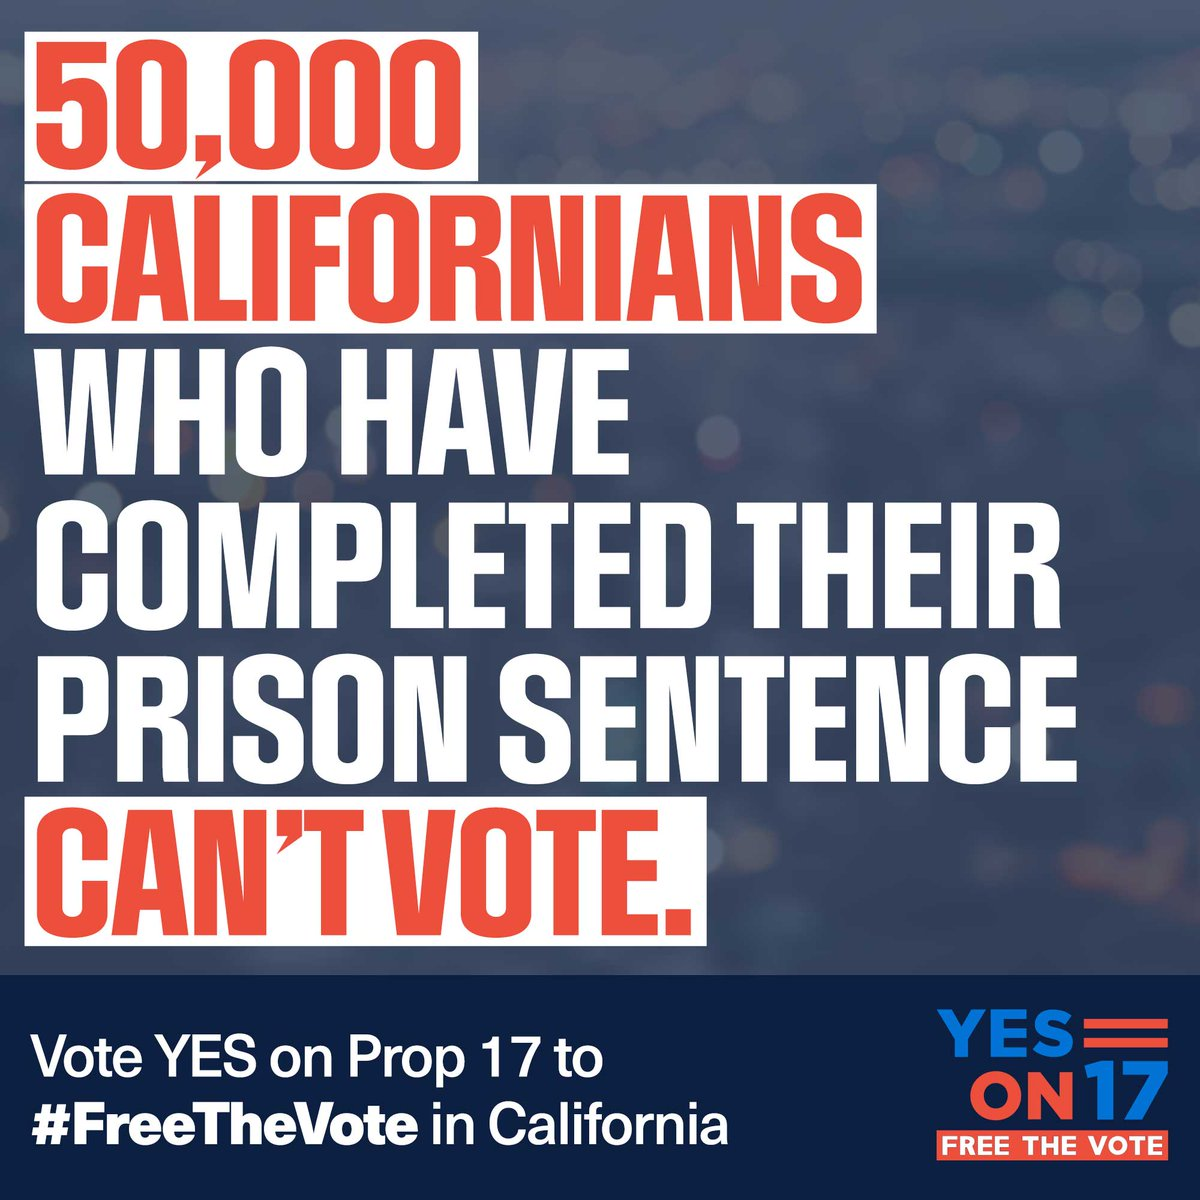 50,000 Californians who have returned home from prison can't vote even though they are raising families, holding jobs, paying taxes, and contributing to society in every other way. Please vote #YesOnProp17 this Nov. to #FreeTheVote! https://t.co/cE12GXqUHs